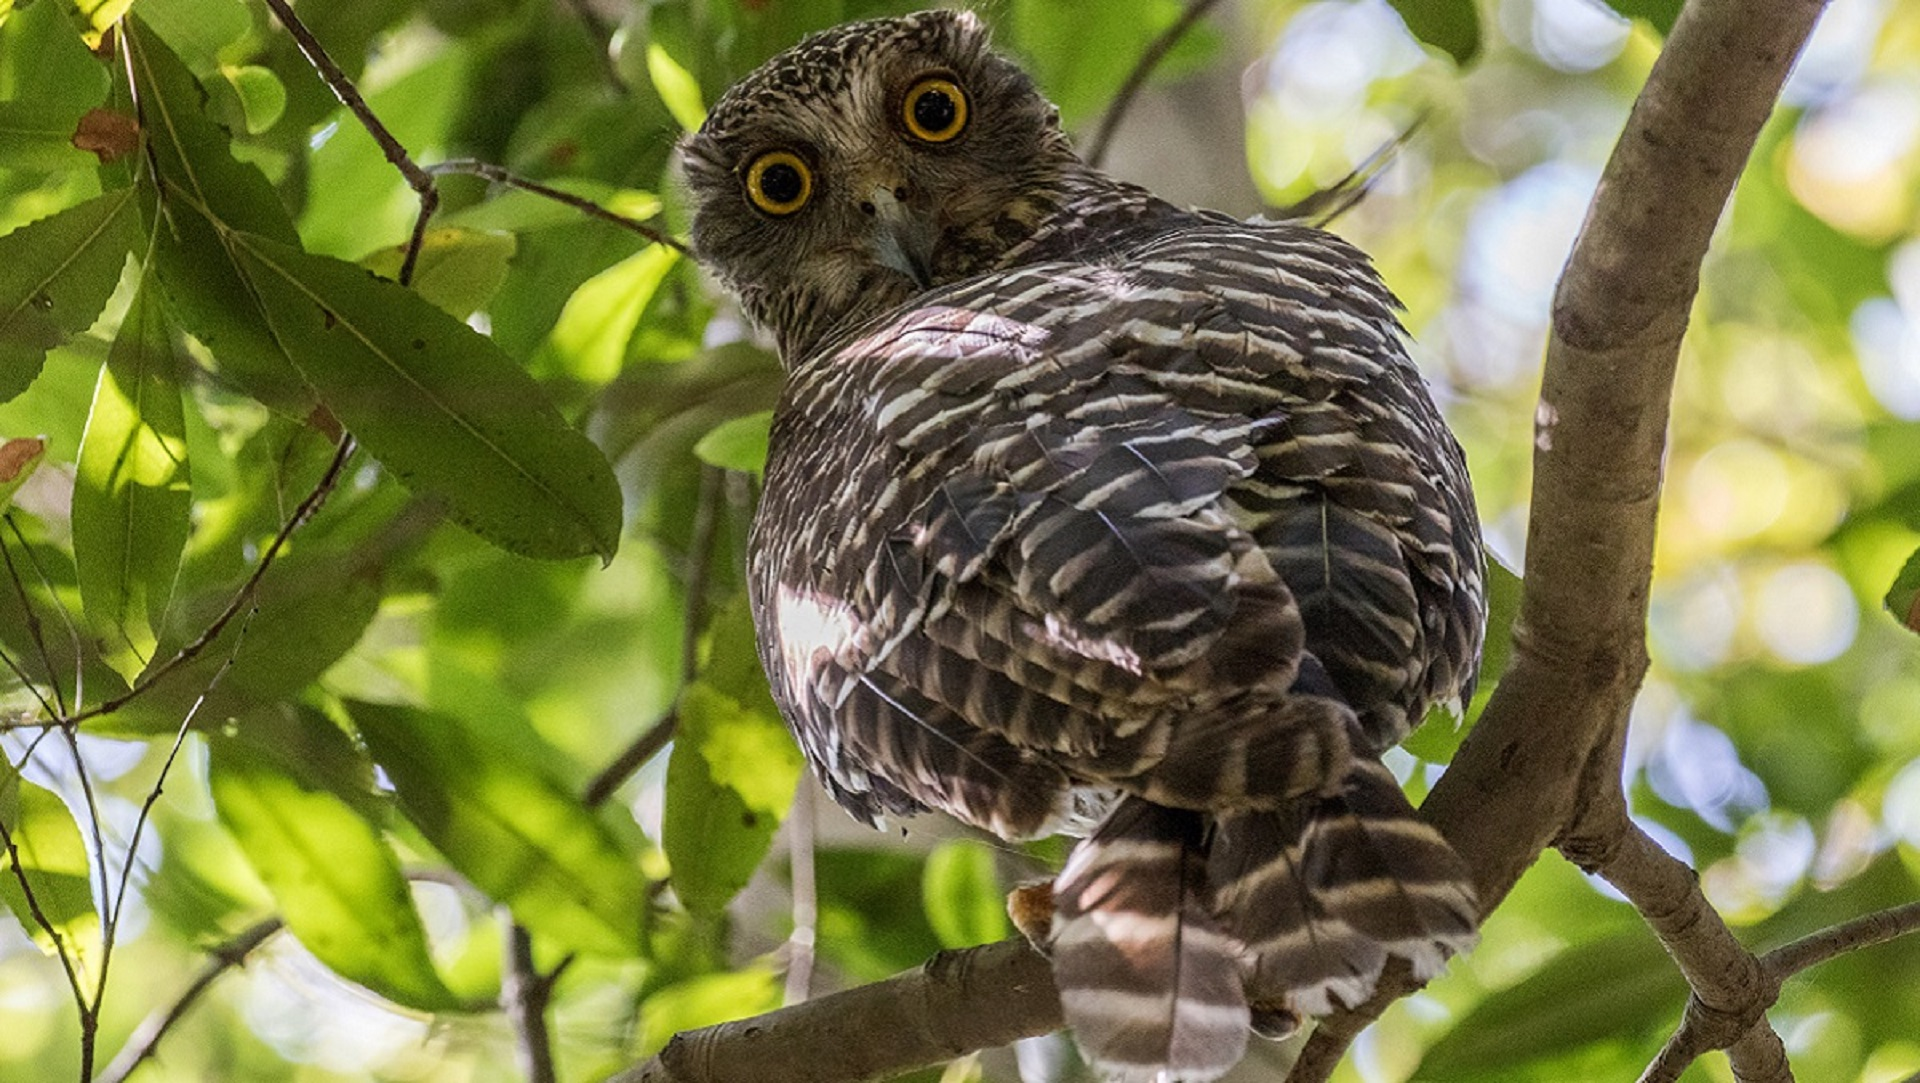 On the hunt for the powerful owl